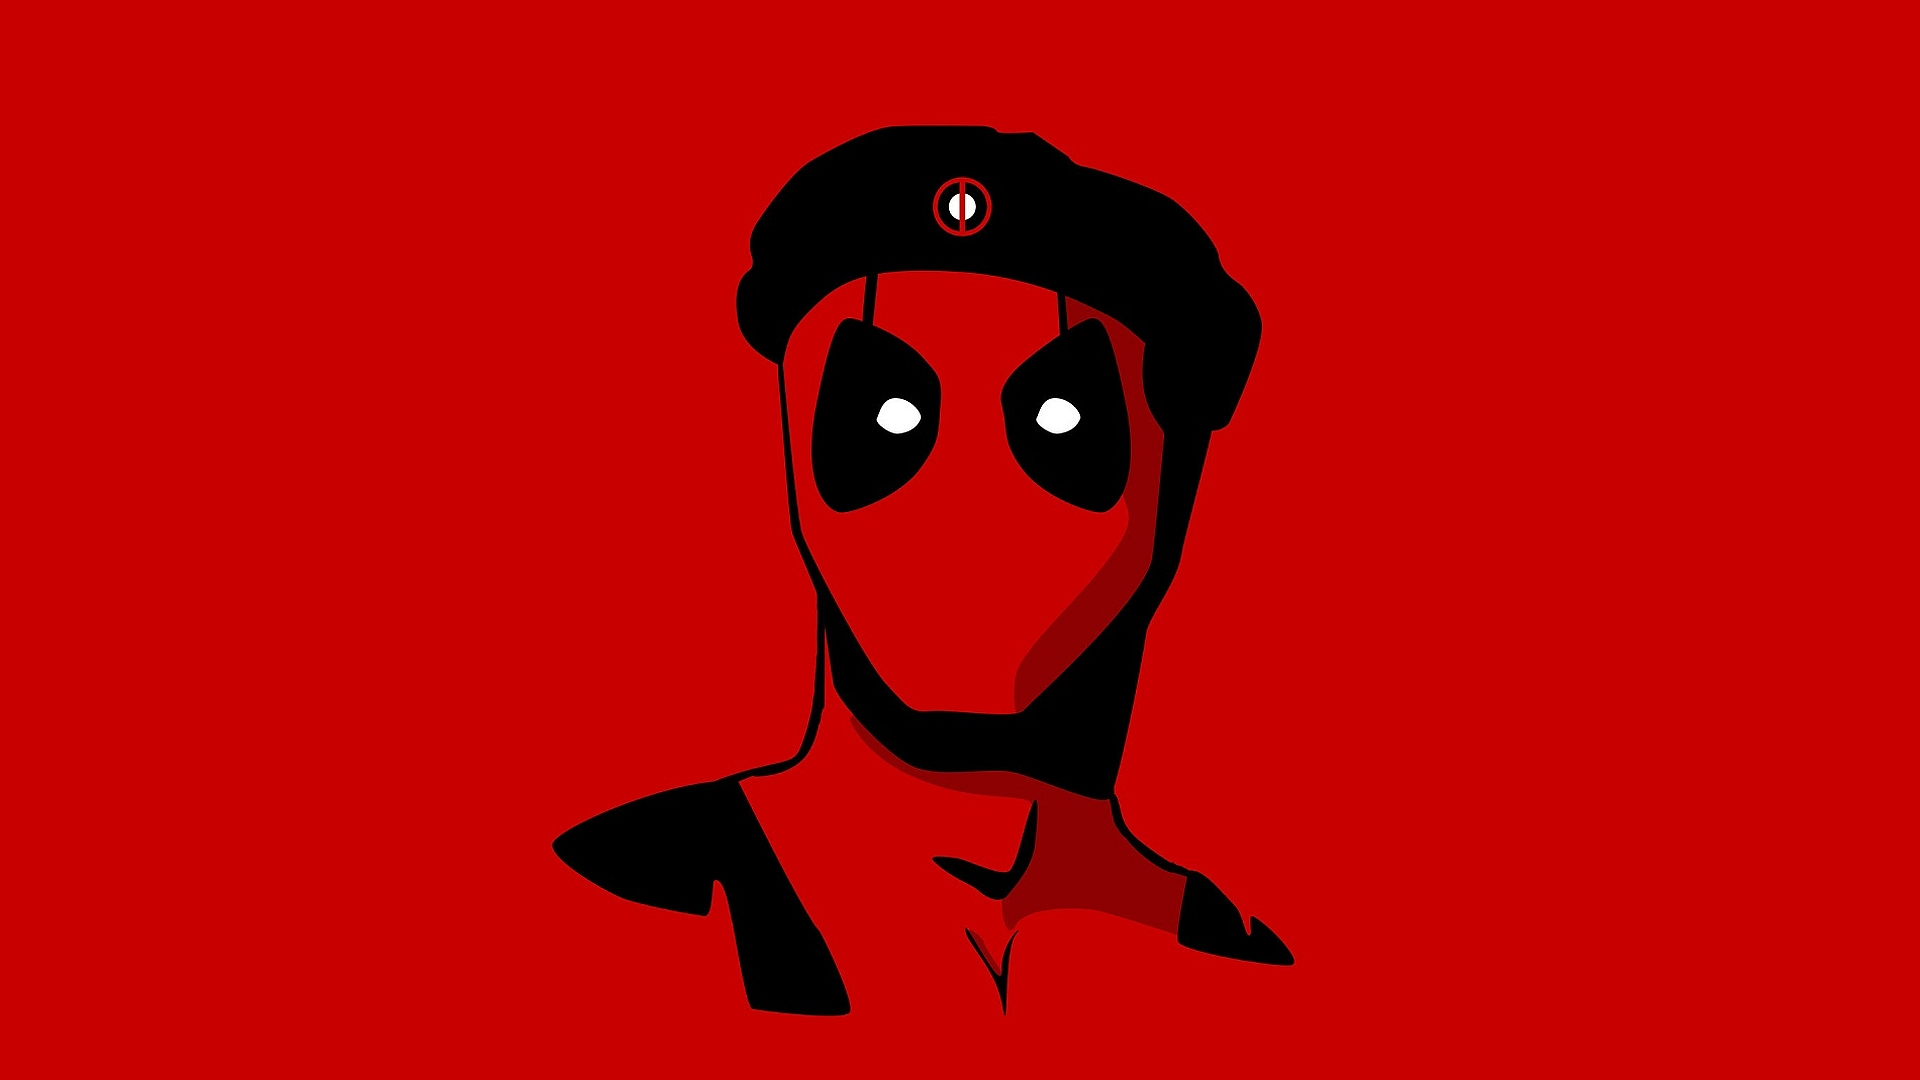 deadpool wallpaper for iphone 6 plus